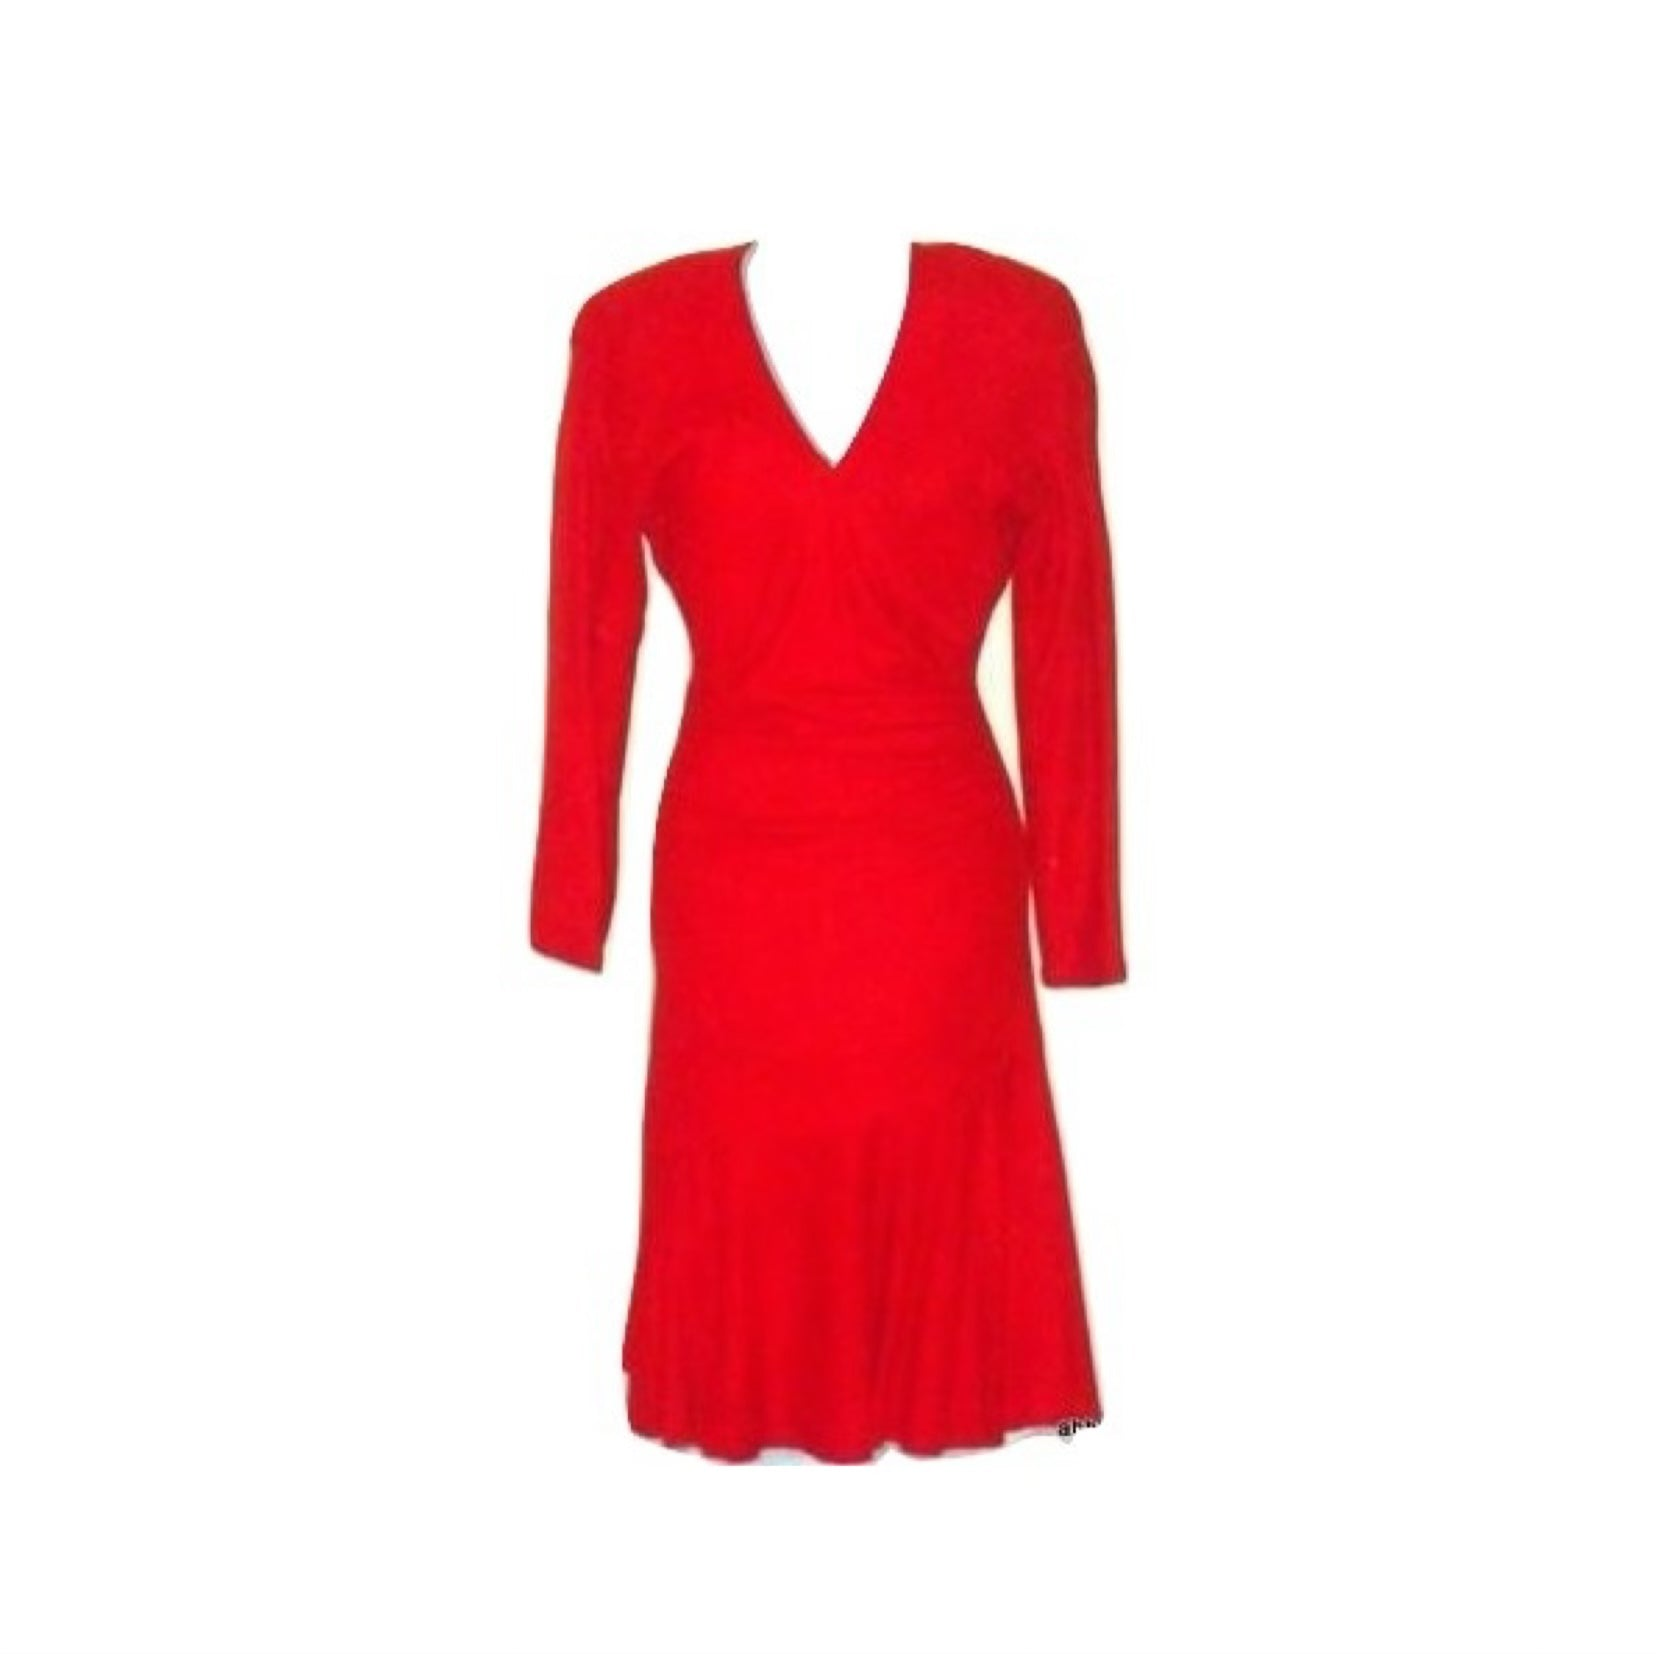 Vintage VAKKO Red Soft Suede Leather Cocktail Dress